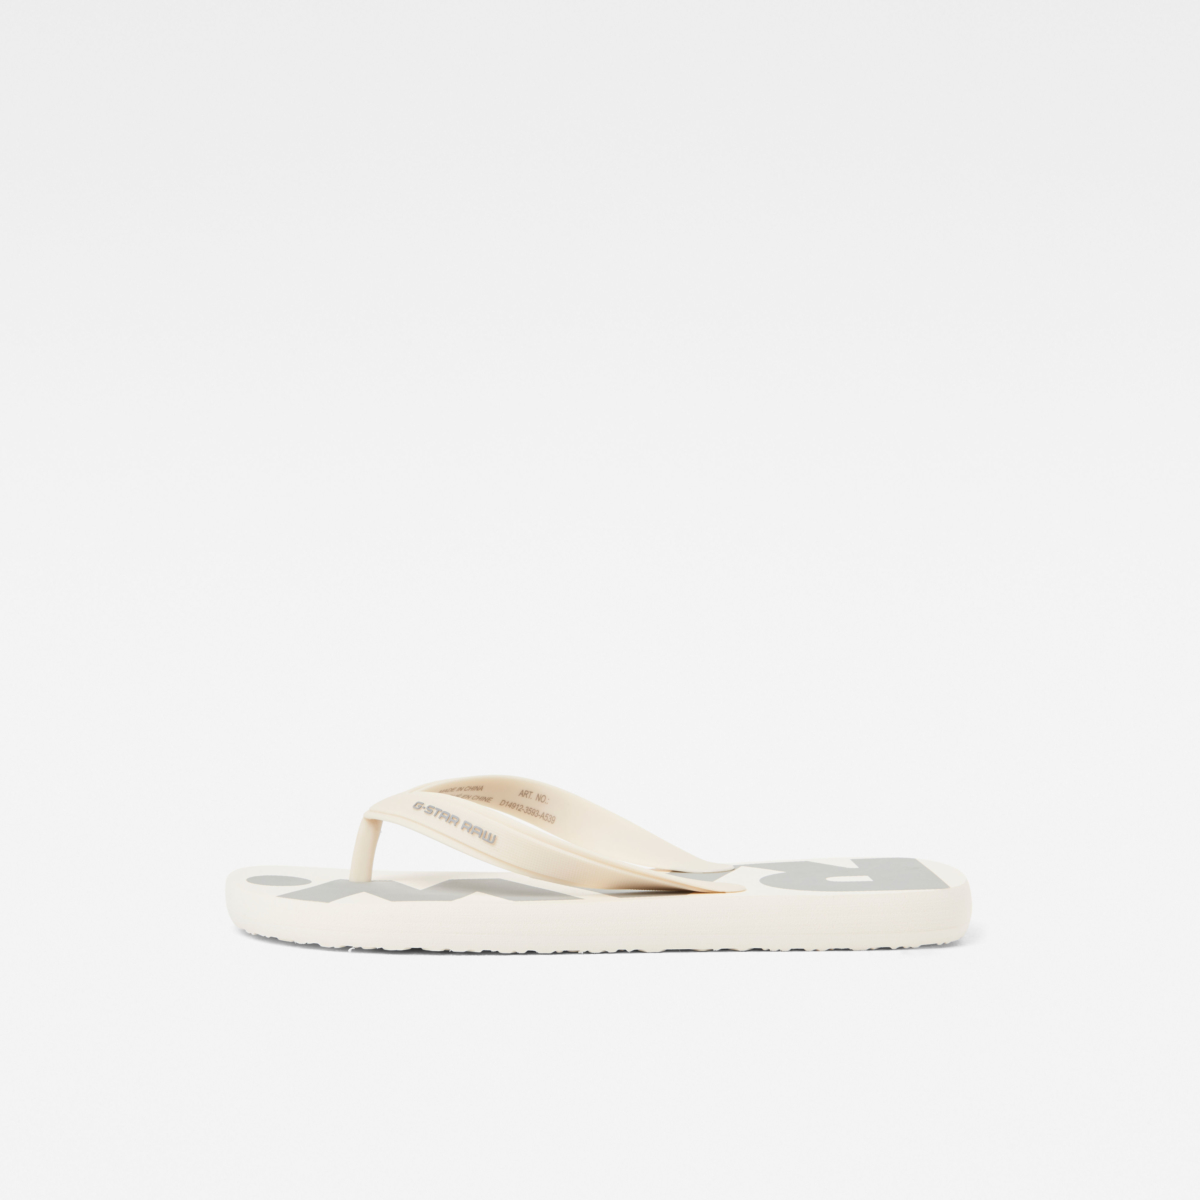 G-Star Shoes Dend Slipper Grey Male Canada - GOOFASH - Mens SLIPPERS